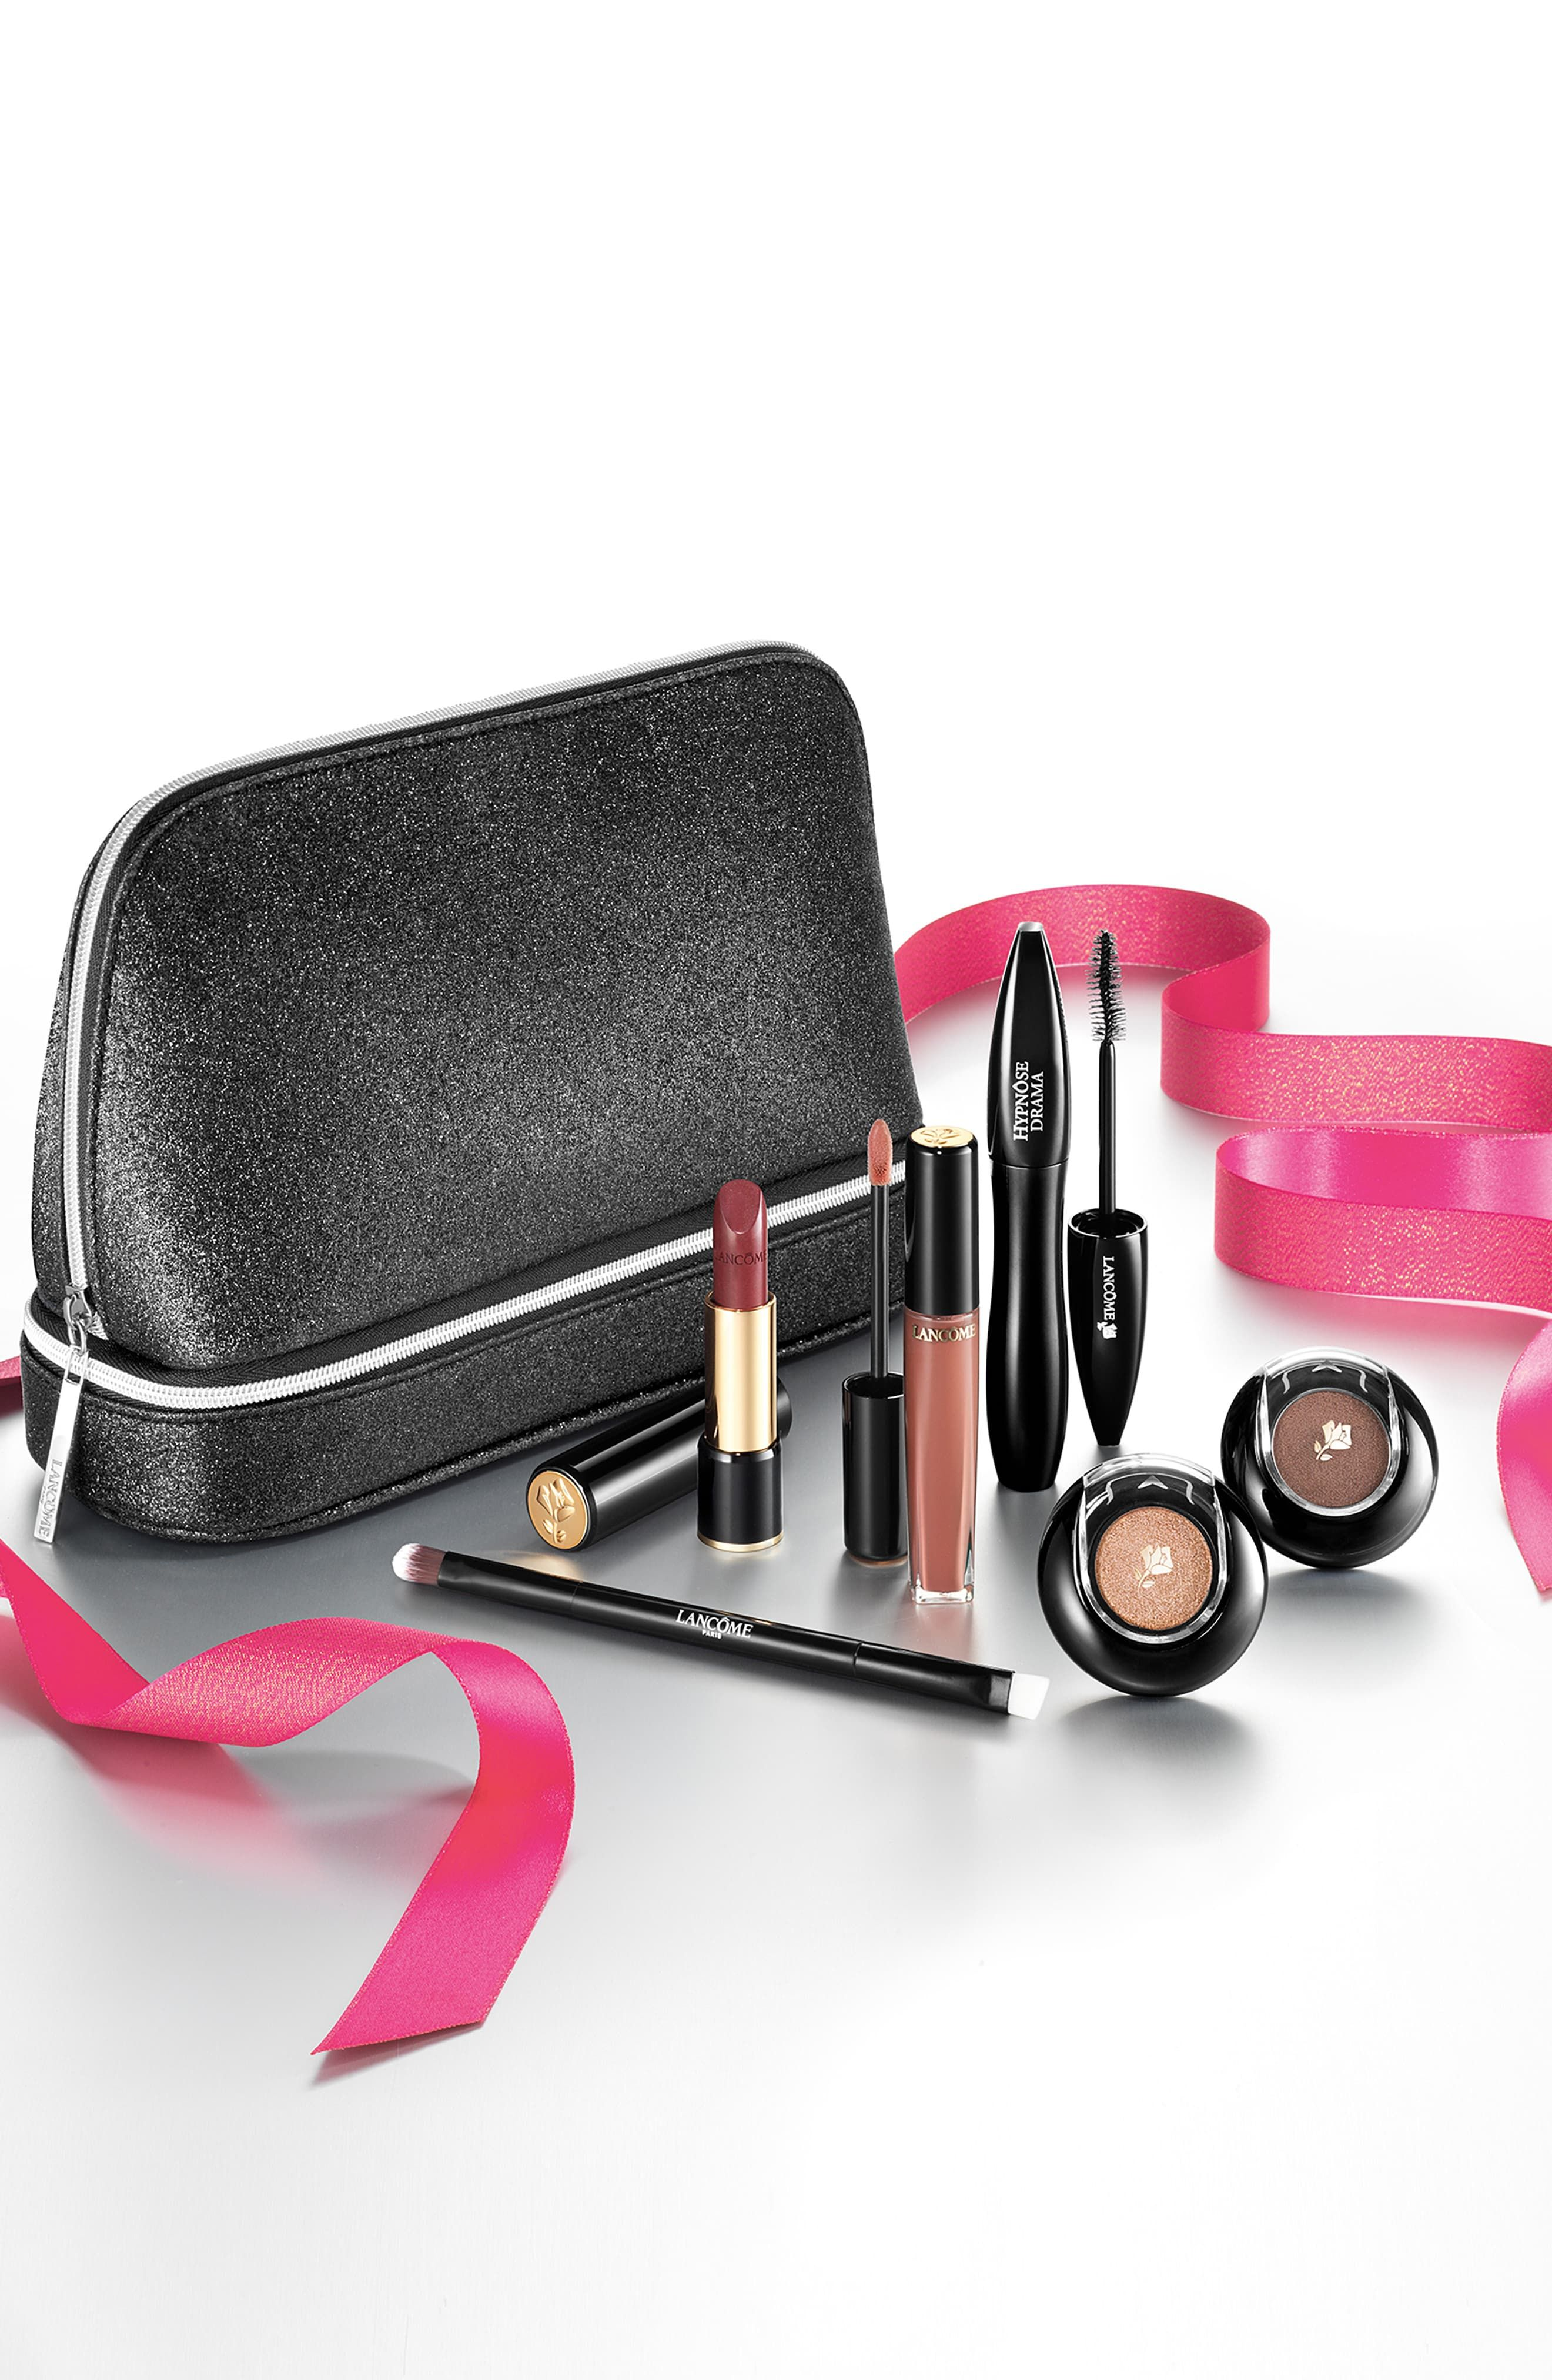 Lancôme Makeup Must Haves Collection (Purchase with